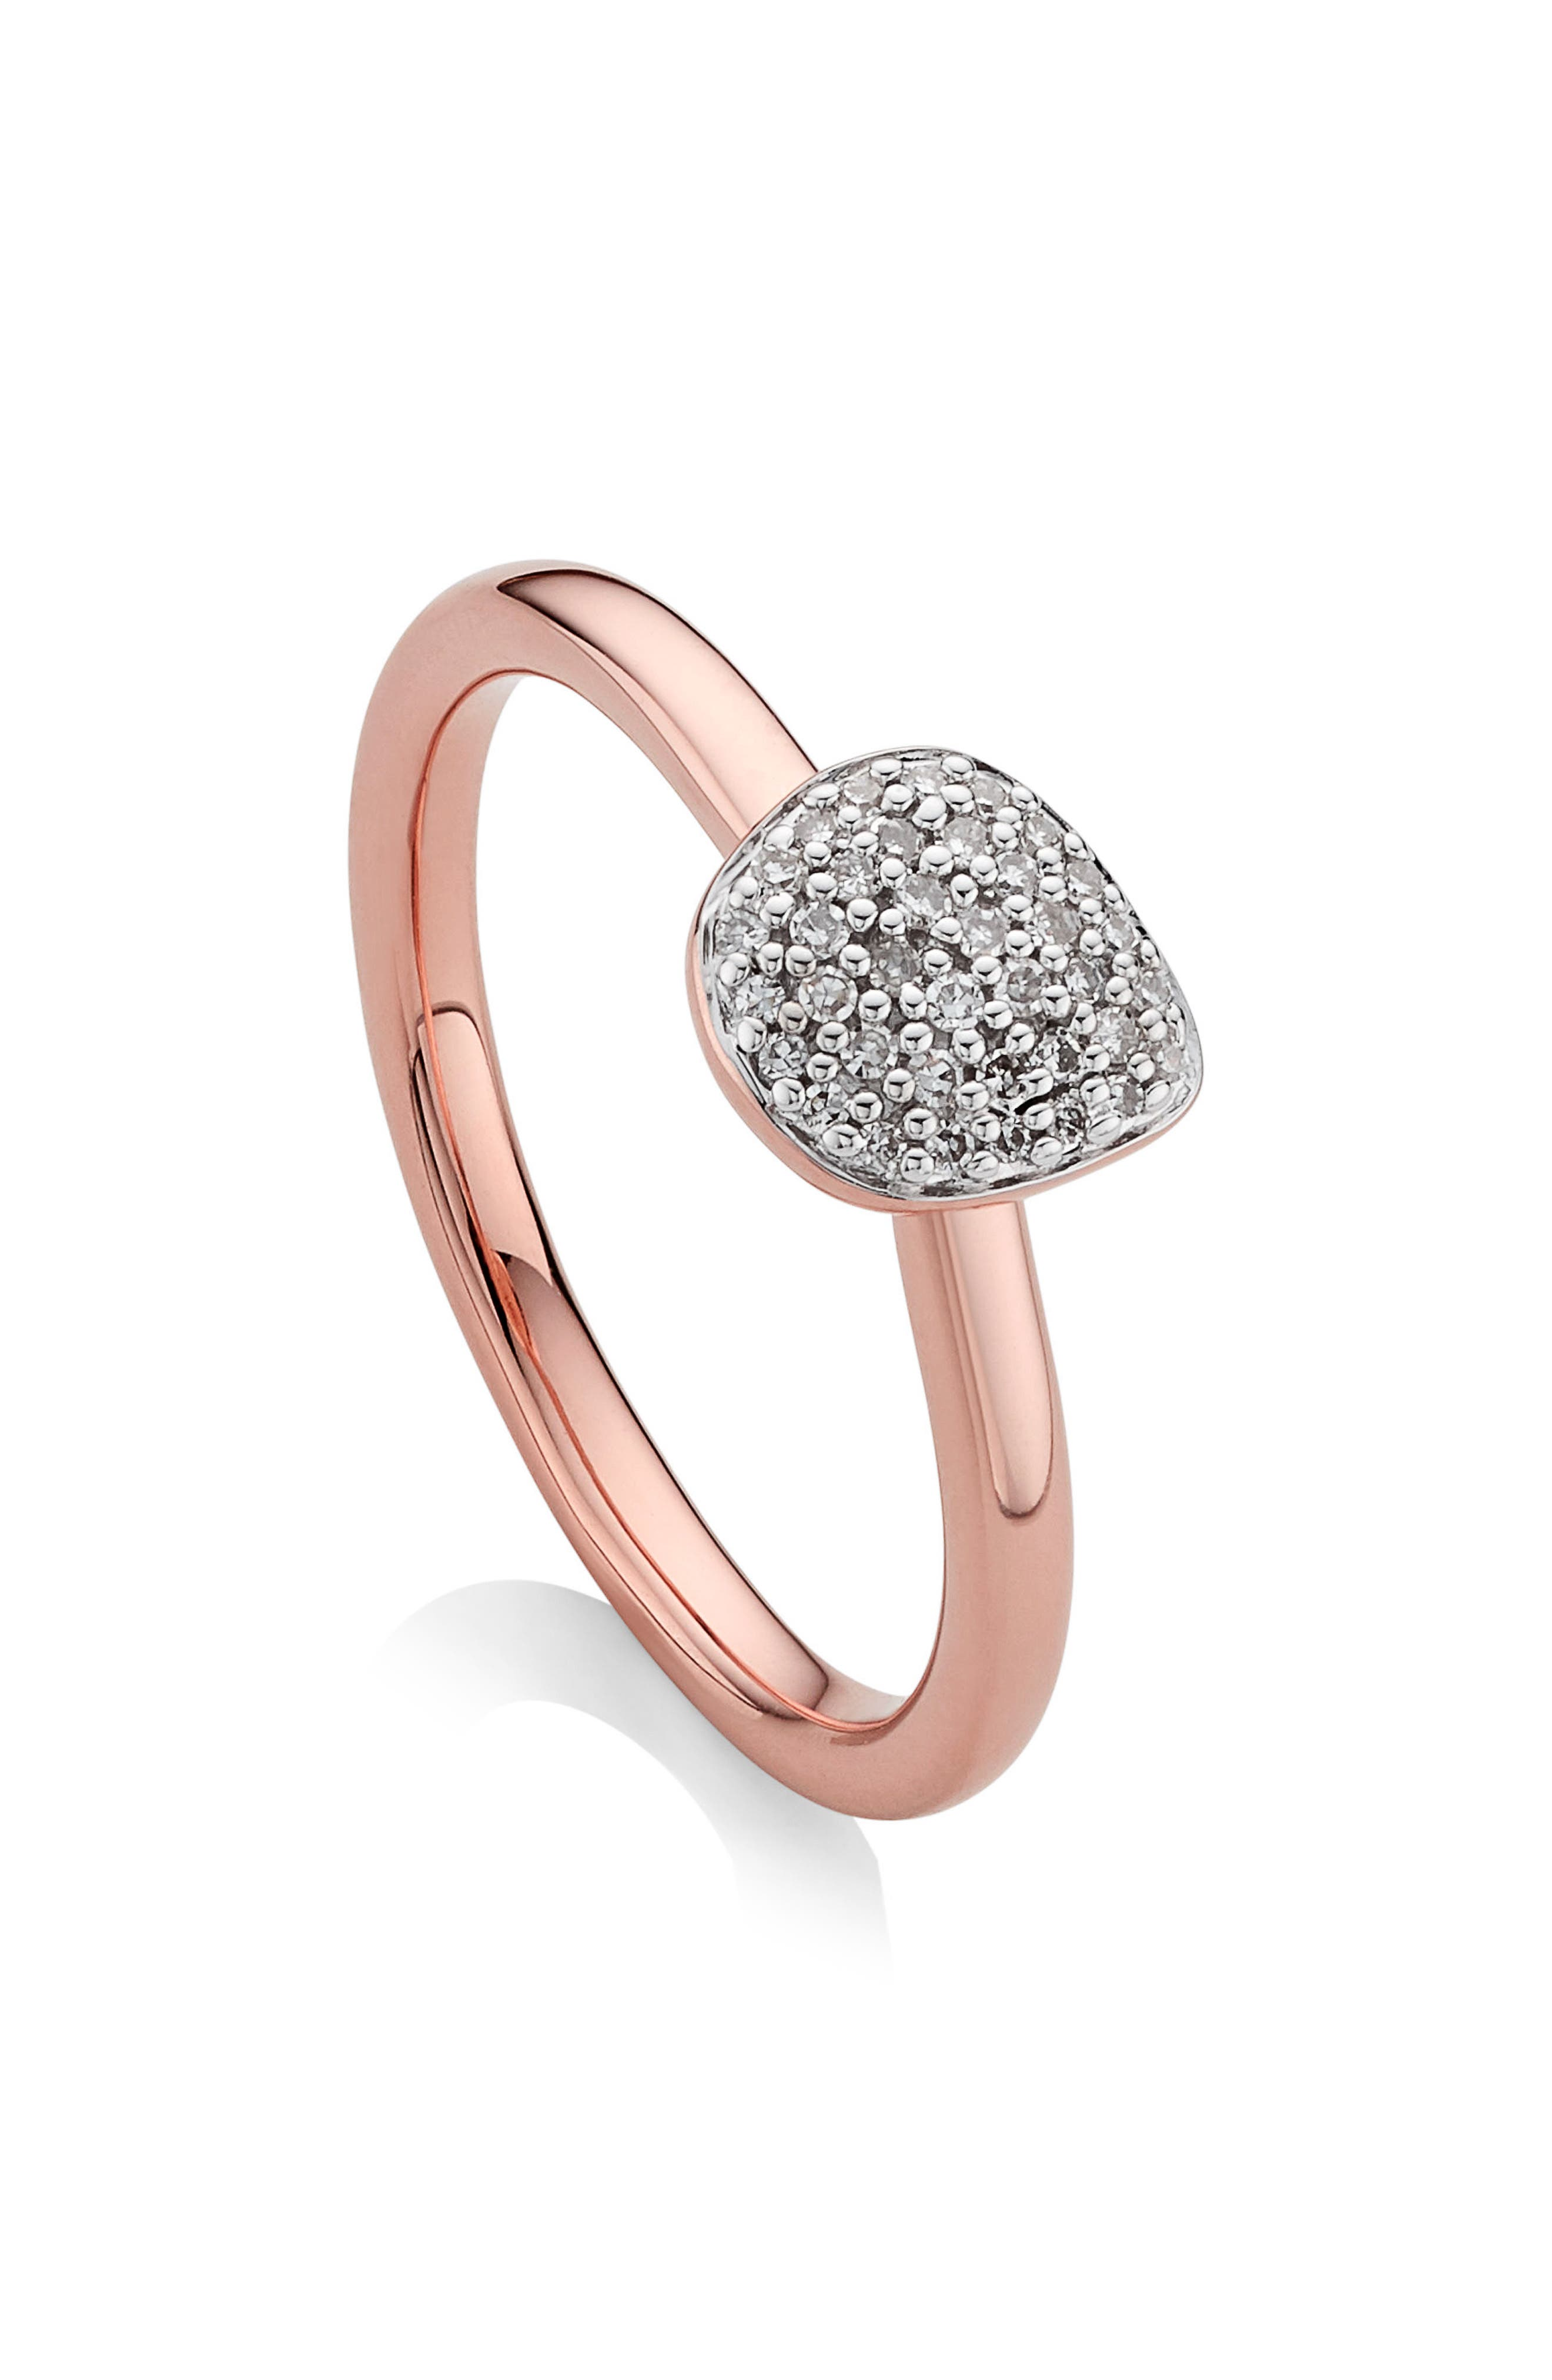 Nura Mini Diamond Pavé Pebble Stacking Ring,                             Alternate thumbnail 2, color,                             ROSE GOLD/ DIAMOND